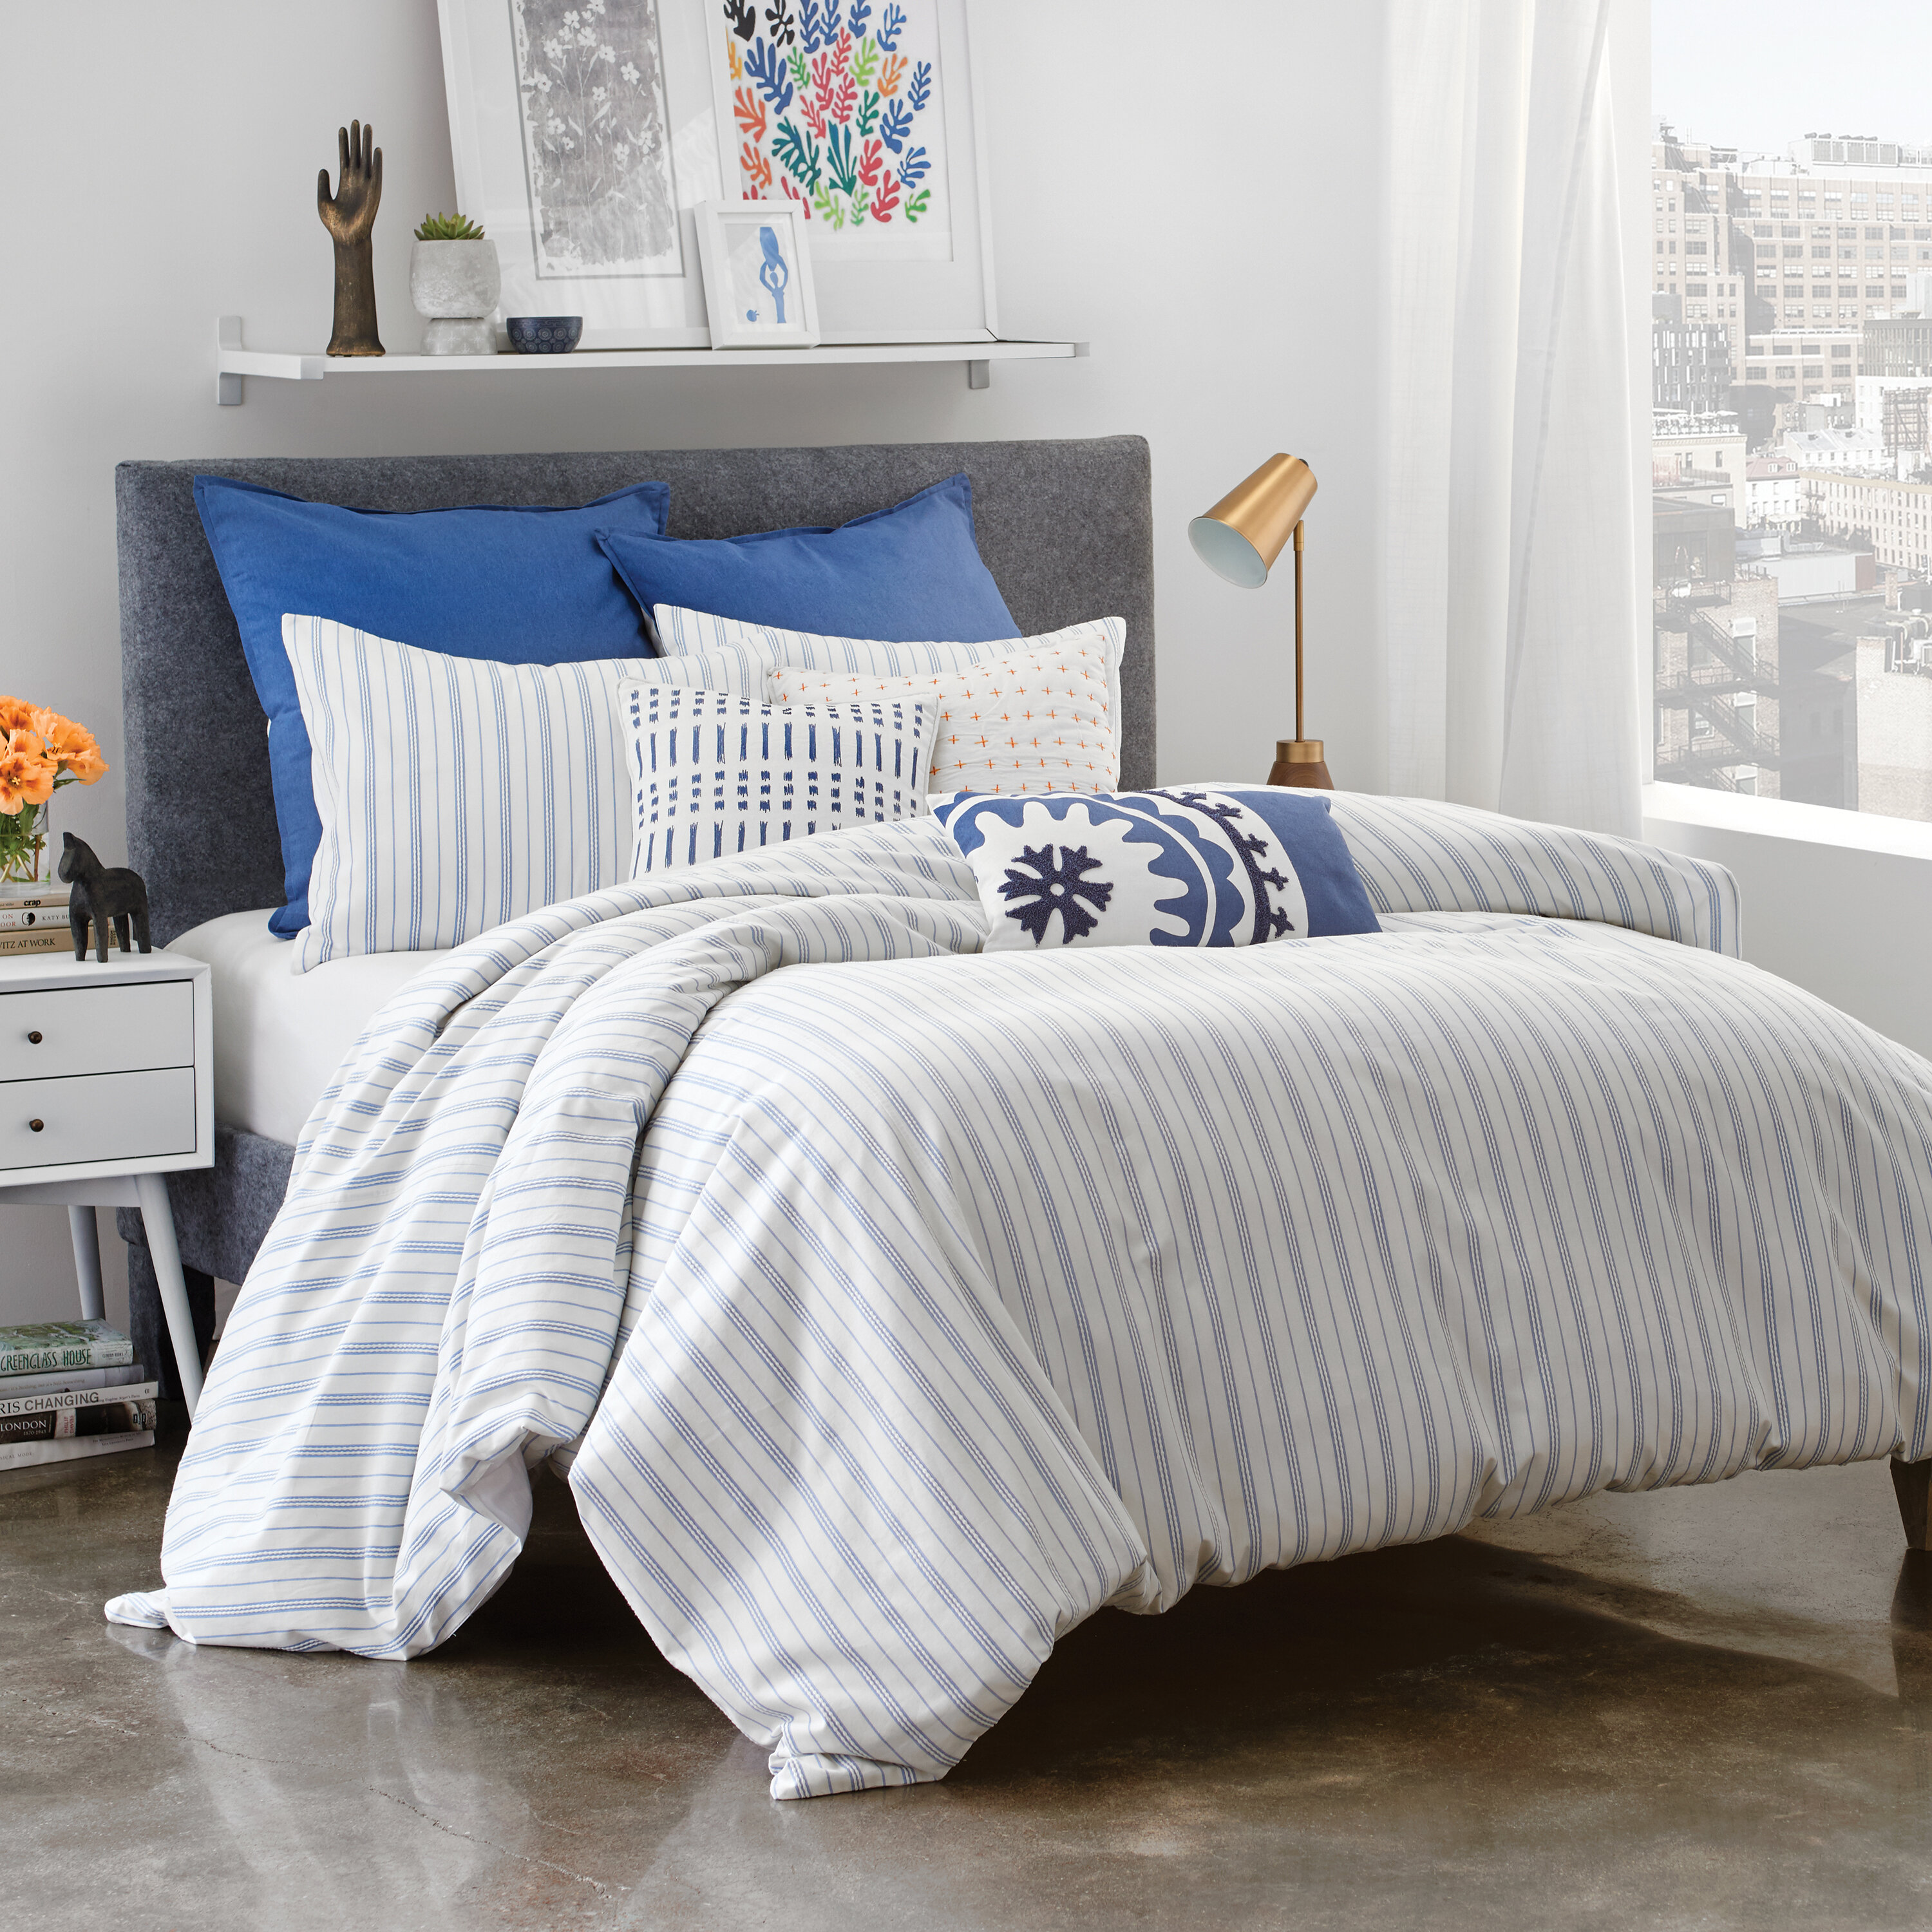 with free comforter piece habitat embroidered set bath bedding pink urban today duvet cover callie overstock detailing shipping product pintuck